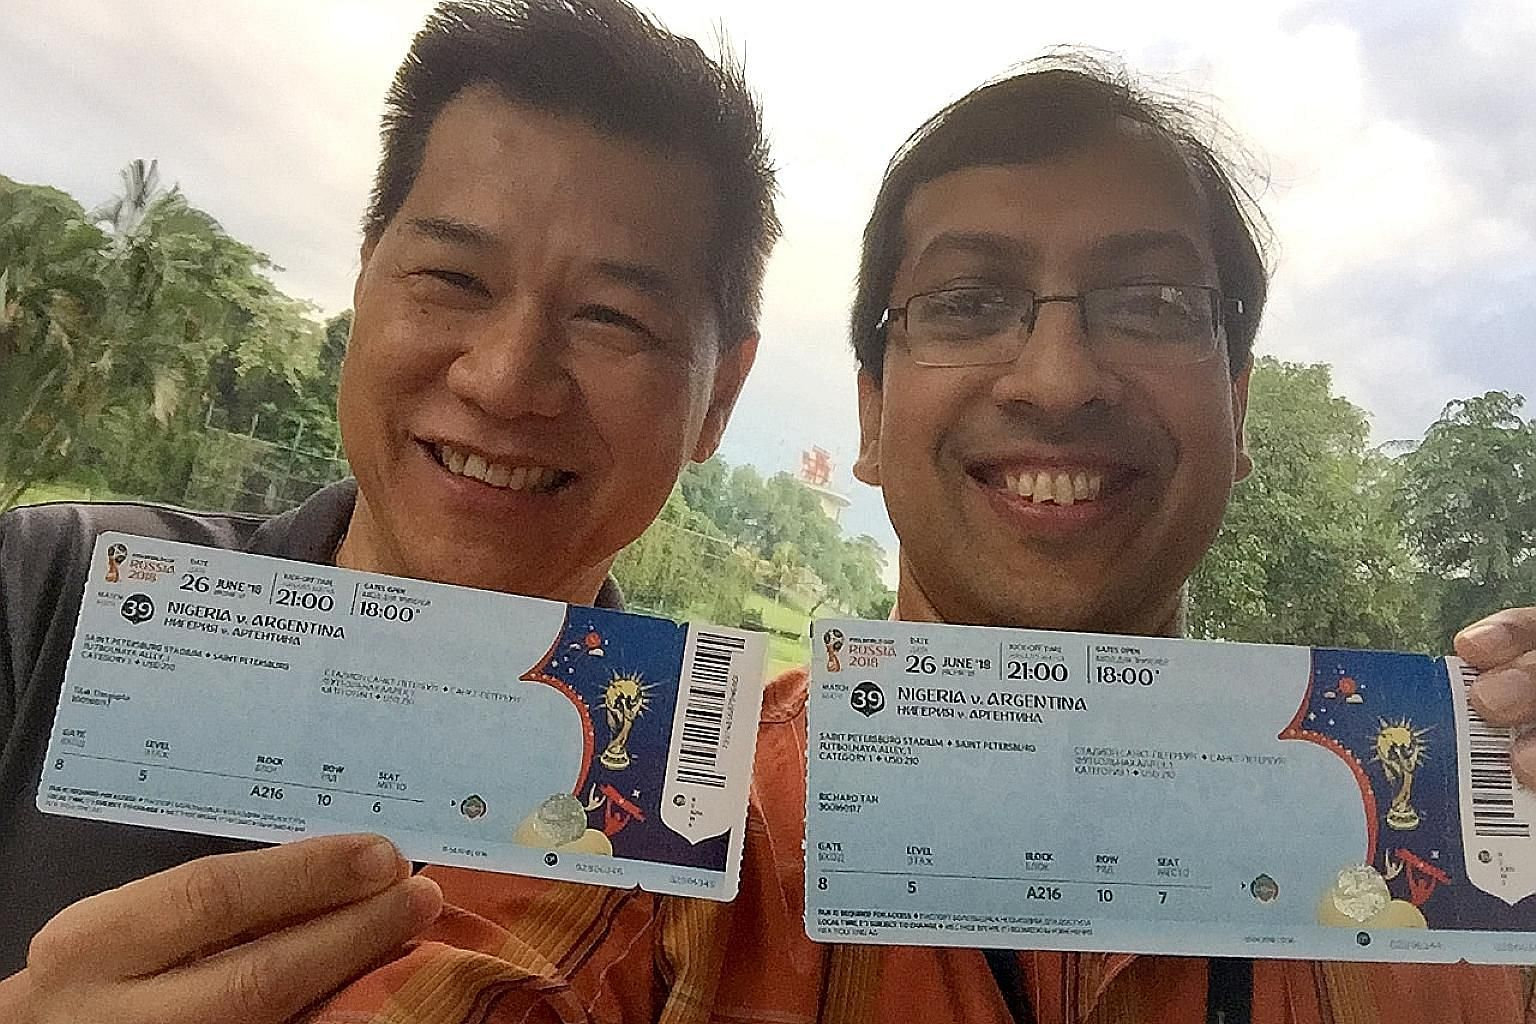 Richard Tan and Tilak Dasgupta are thinking of taking the Singapore flag with them to Russia to watch the World Cup.